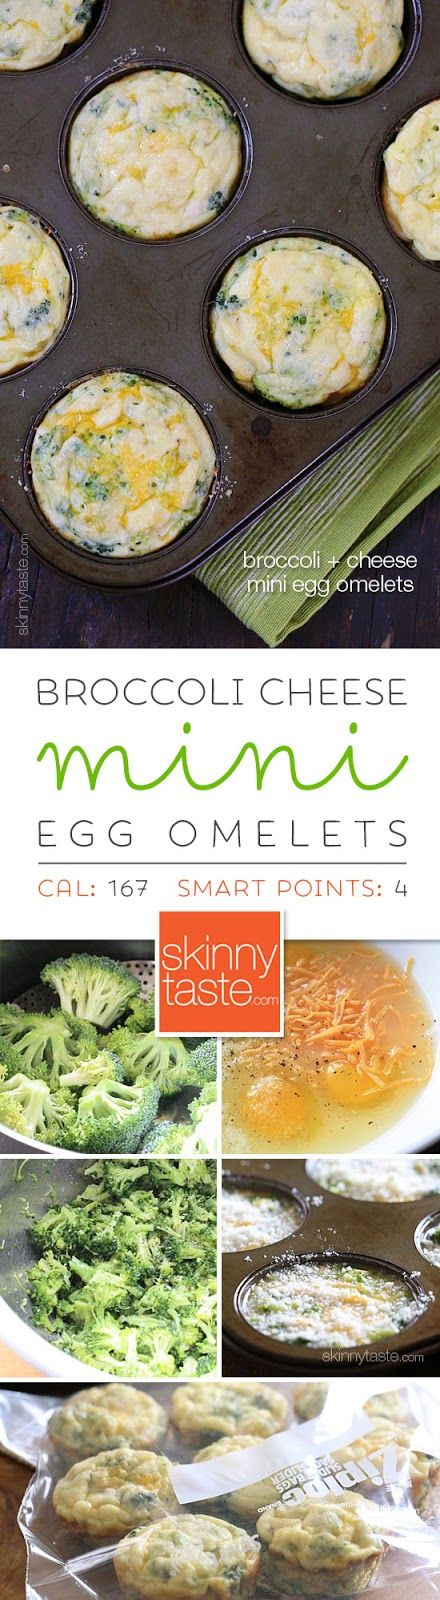 Broccoli and Cheese Mini Egg Omelets